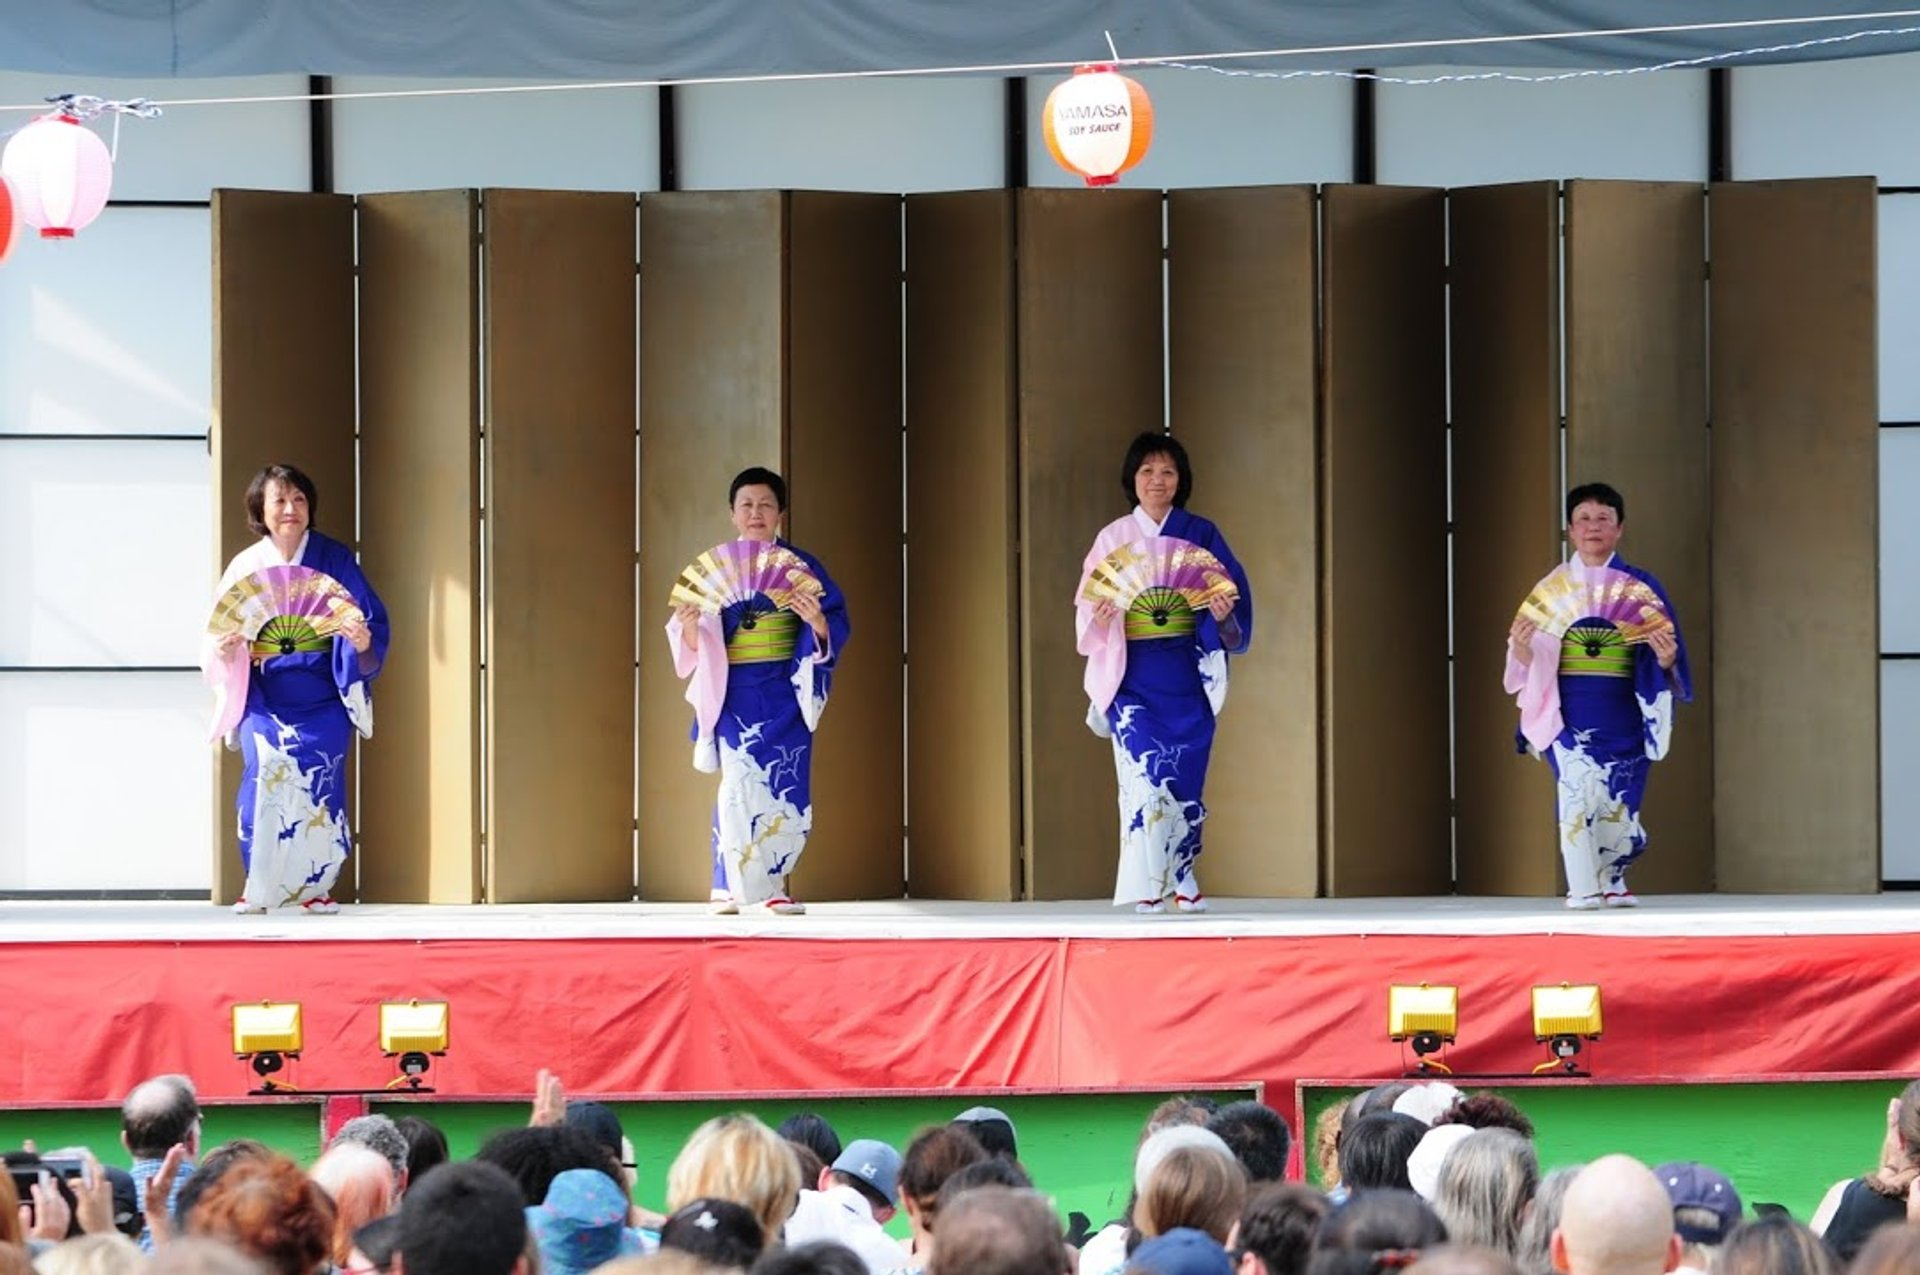 Ginza Holiday Festival in Chicago - Best Season 2019